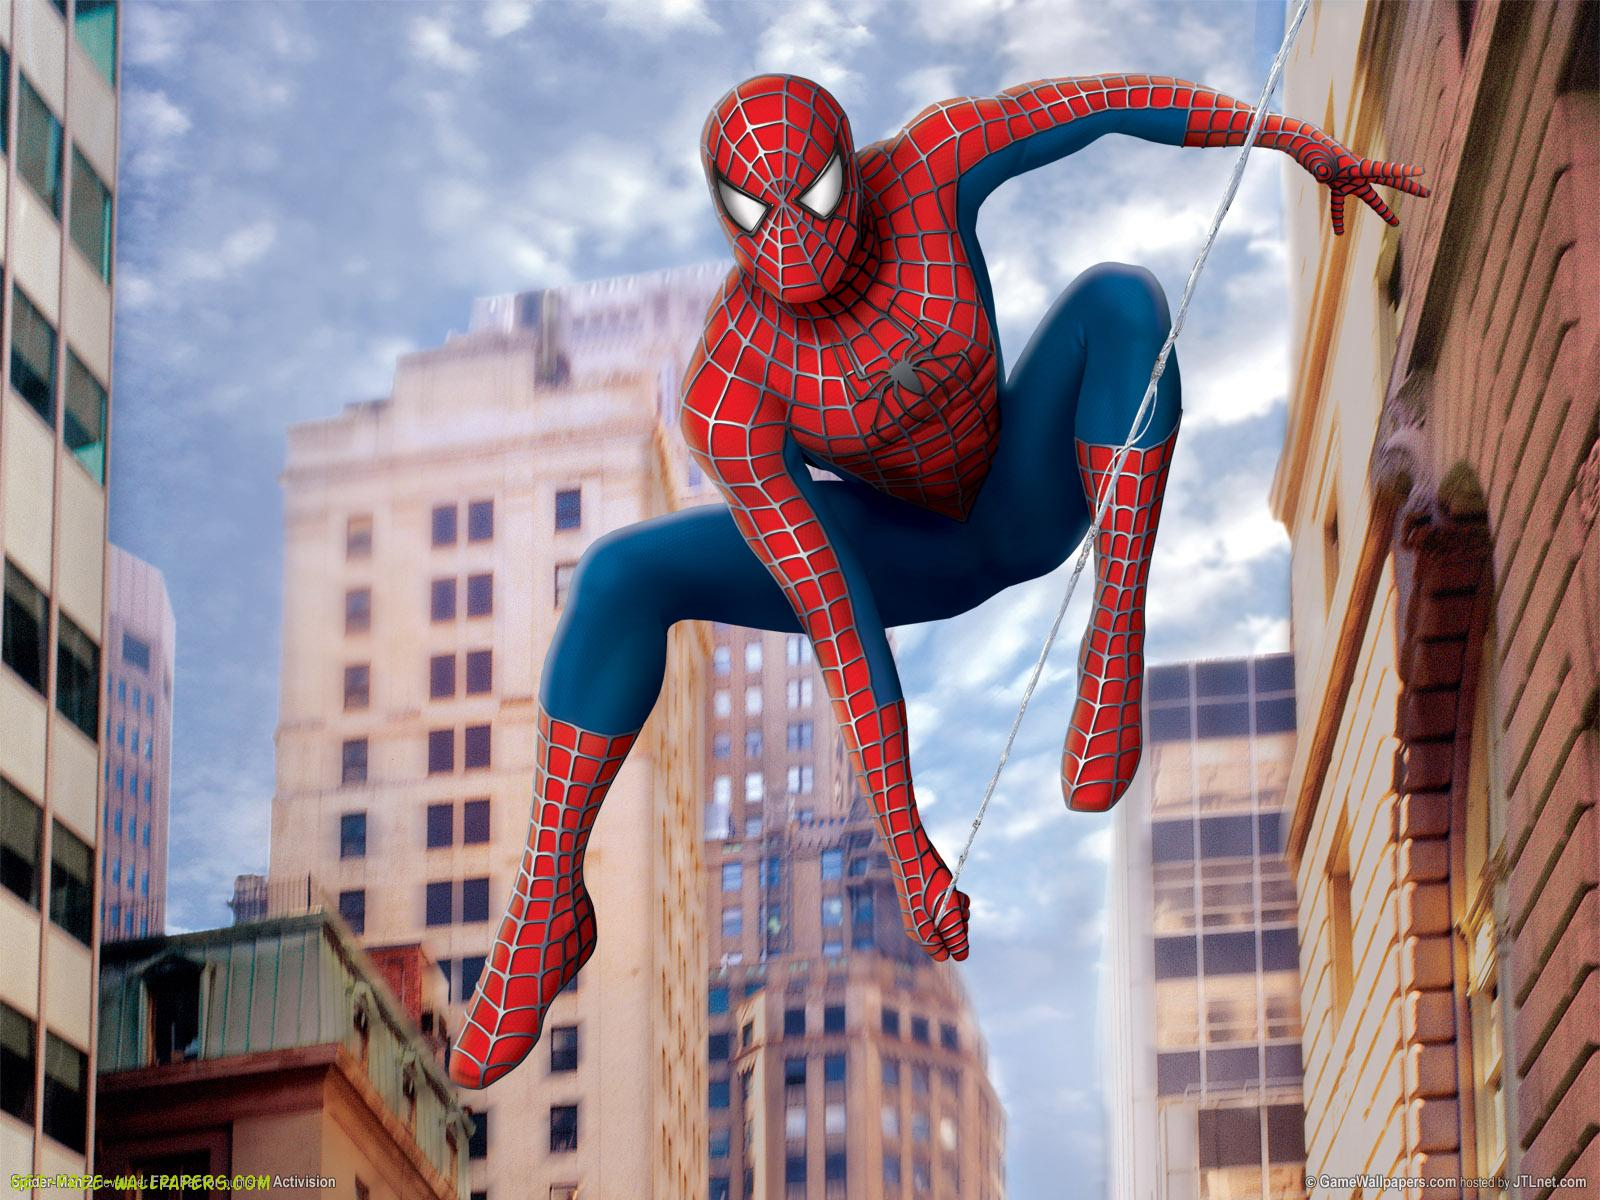 spiderman Spiderman HD wallpapers backgrounds images FHD 4k 1600x1200